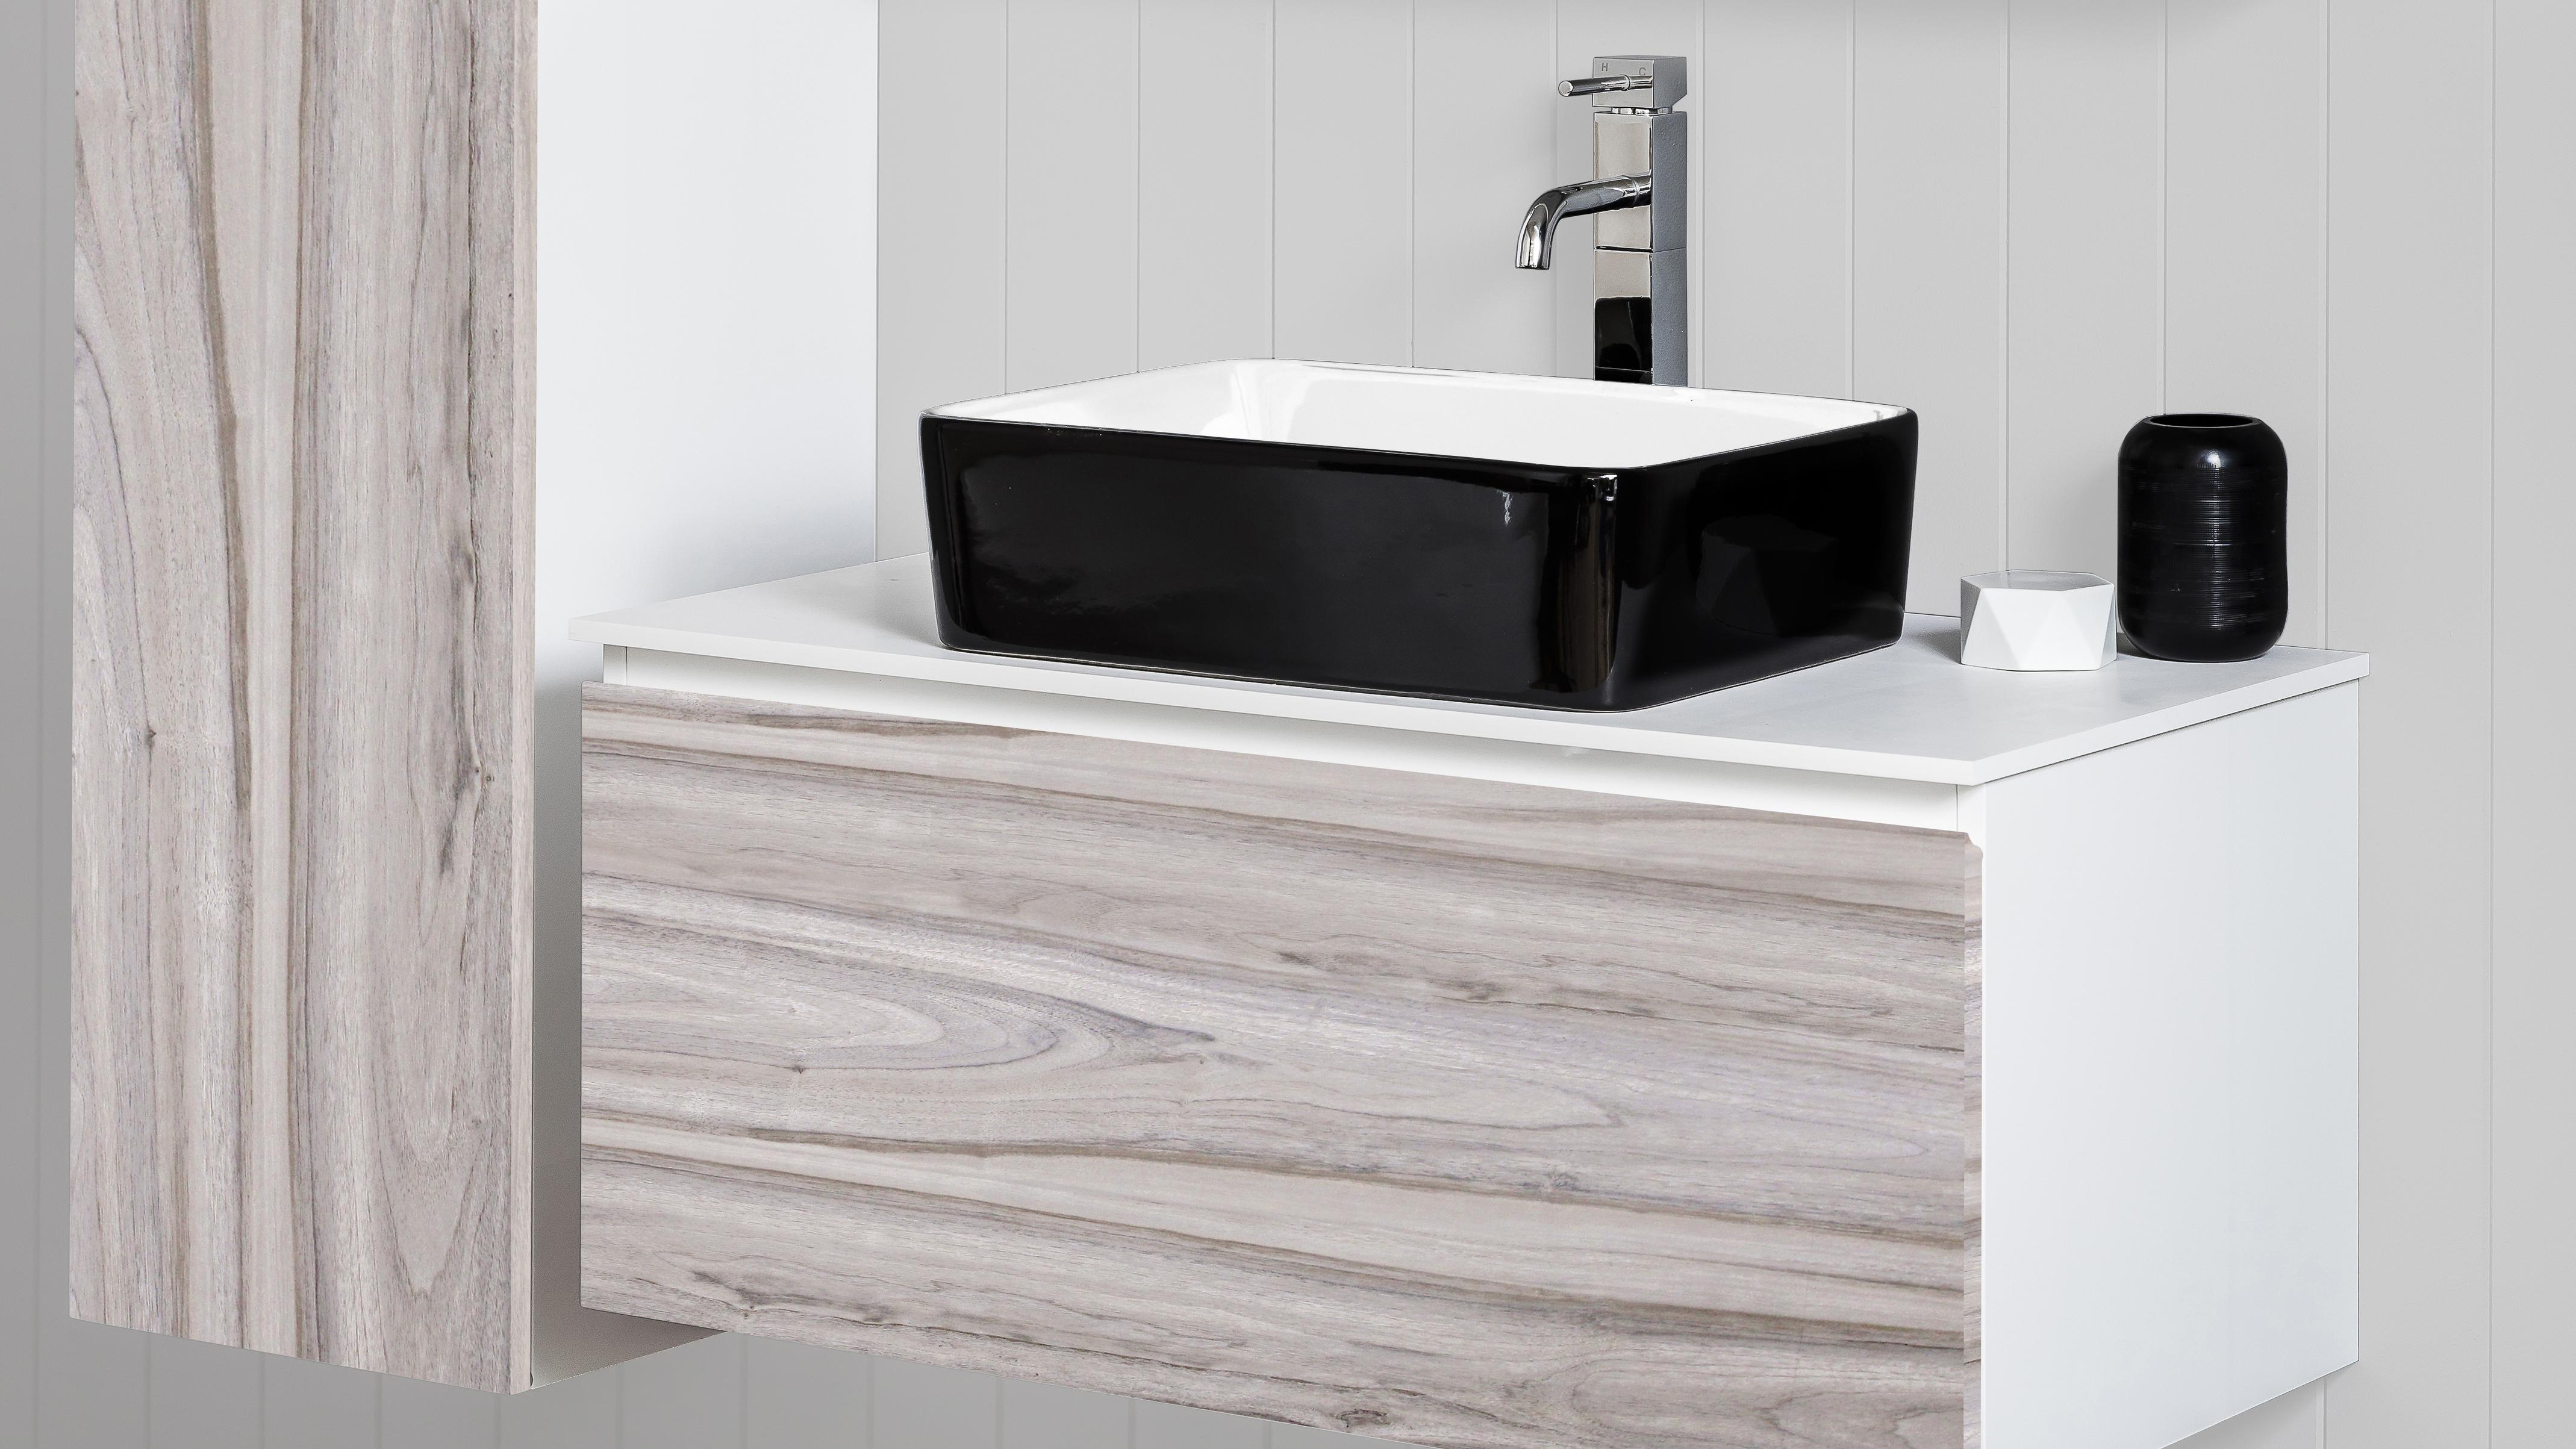 Bathroom with wall-hung cabinet and floating vanity both in oak style.